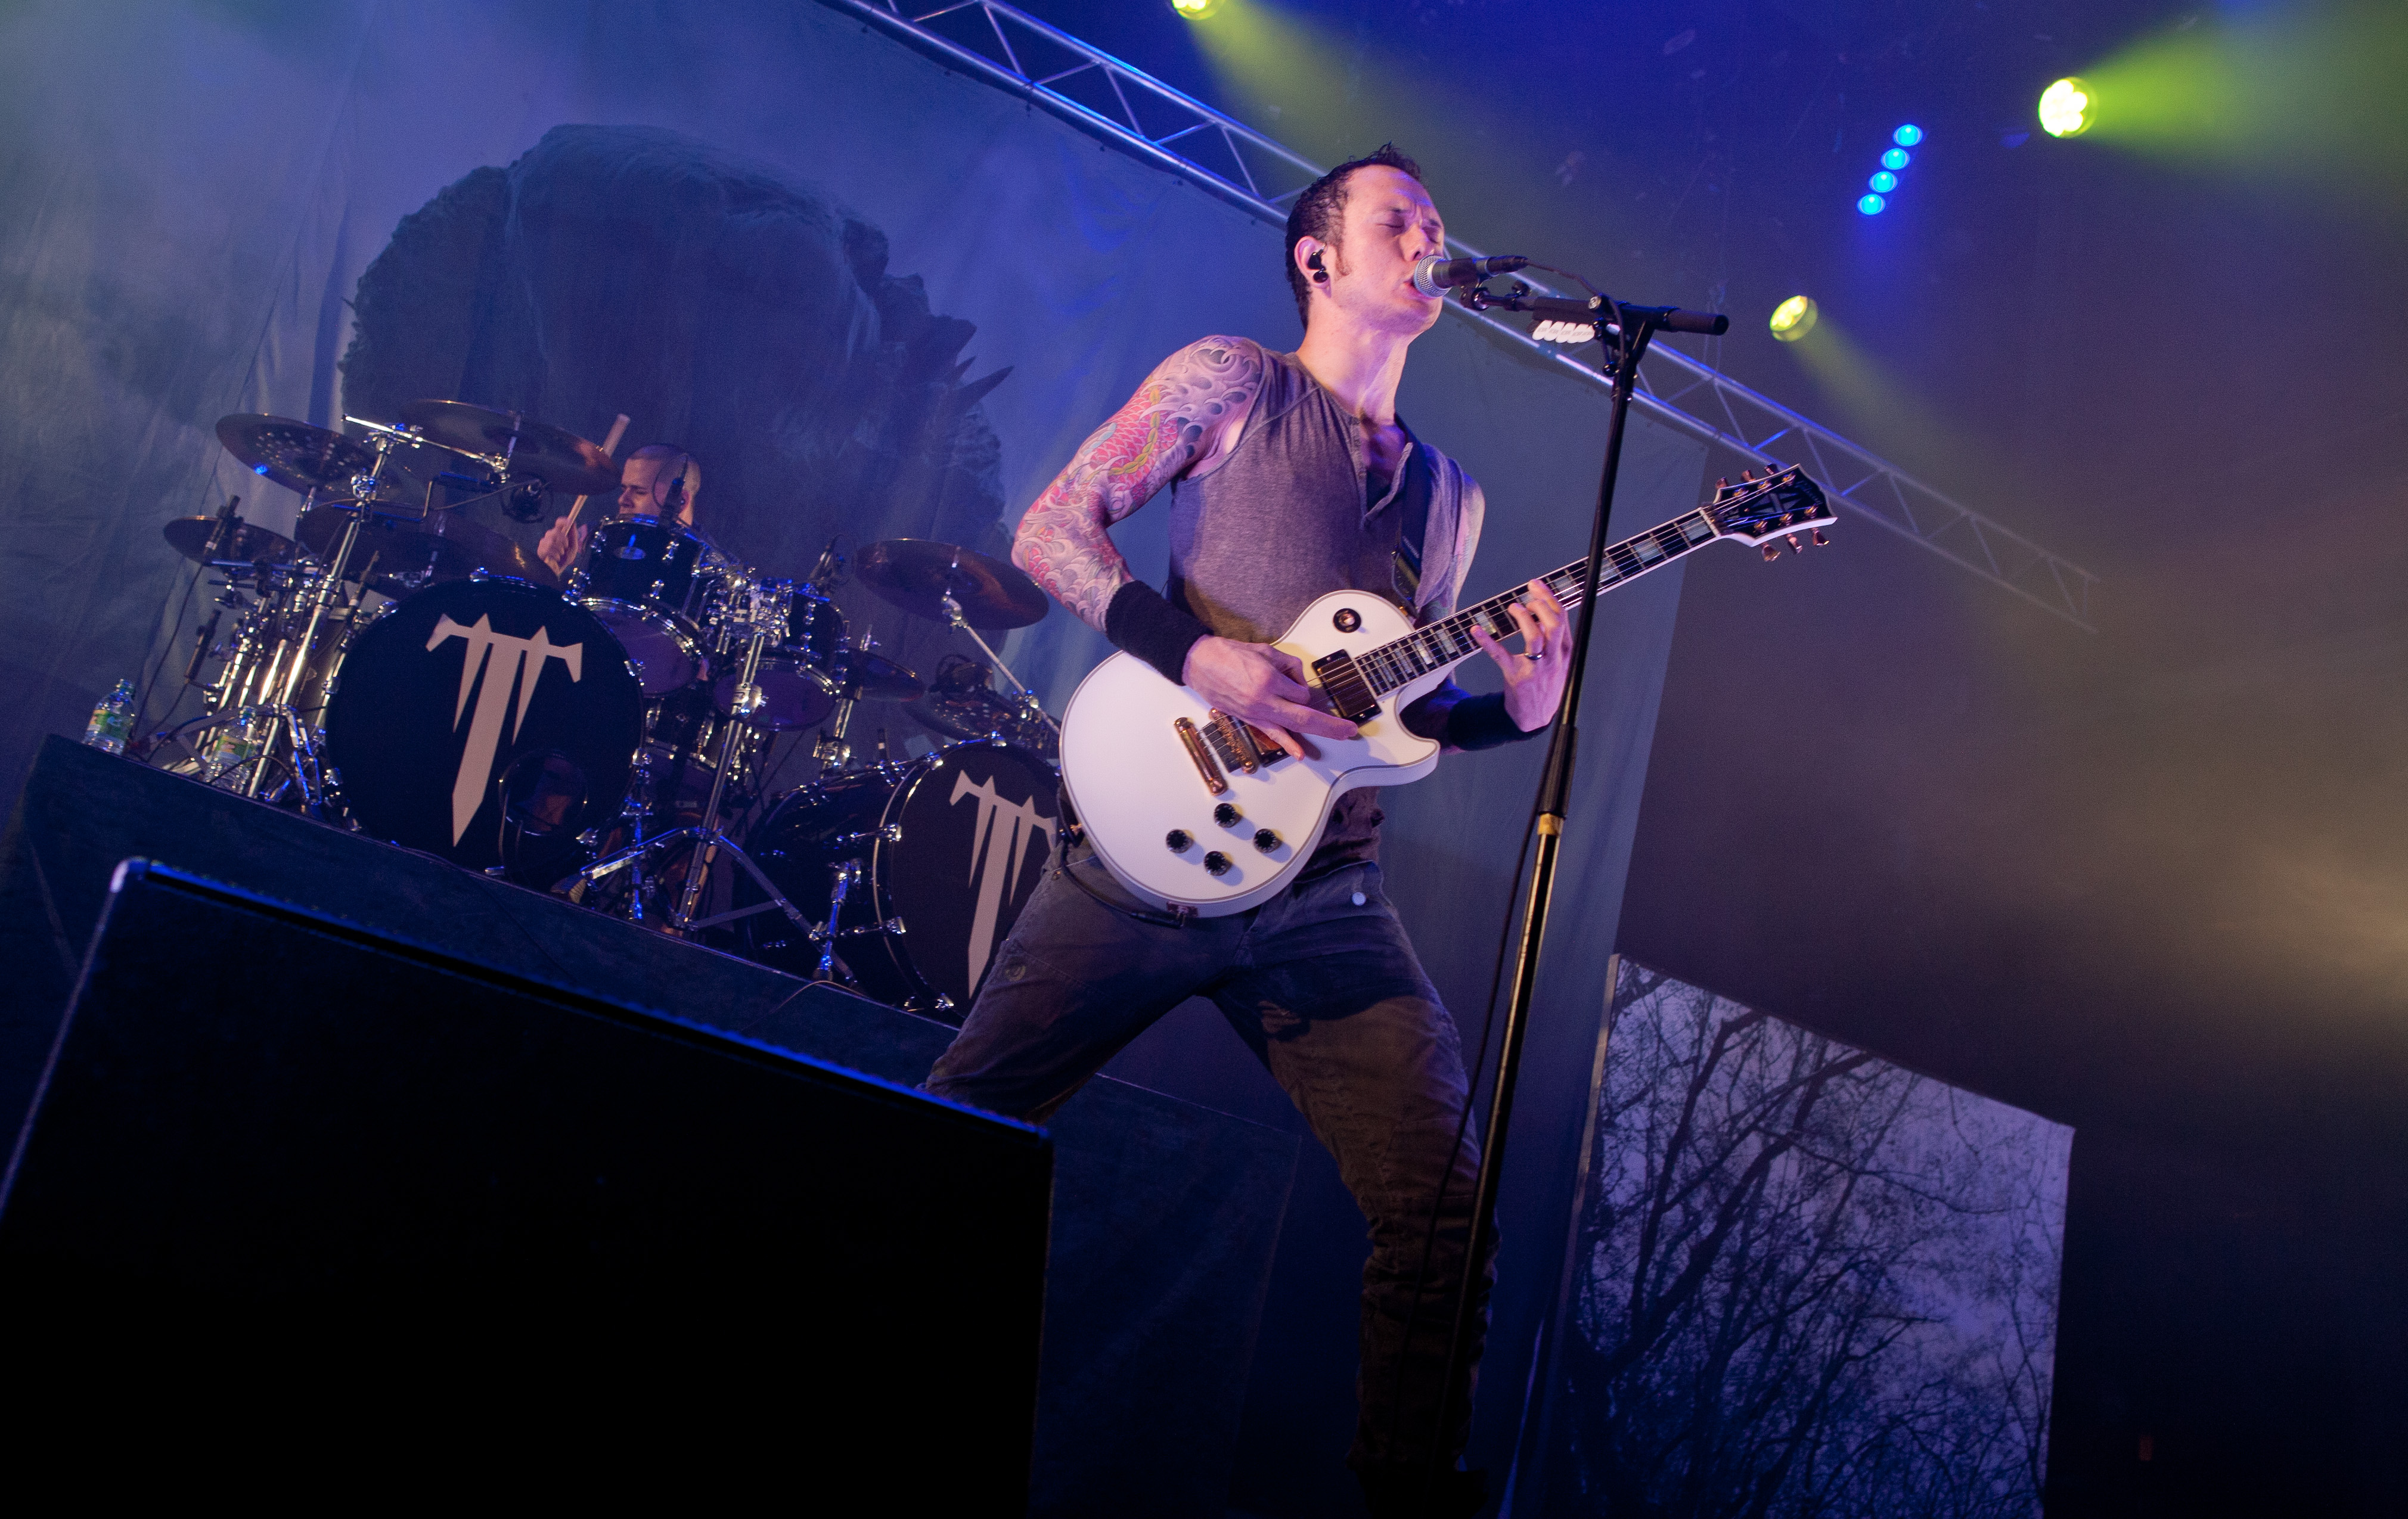 in_flames_sounds_of_a_playground_fading_tour_2011_muenchen_1_20111124_1929767448